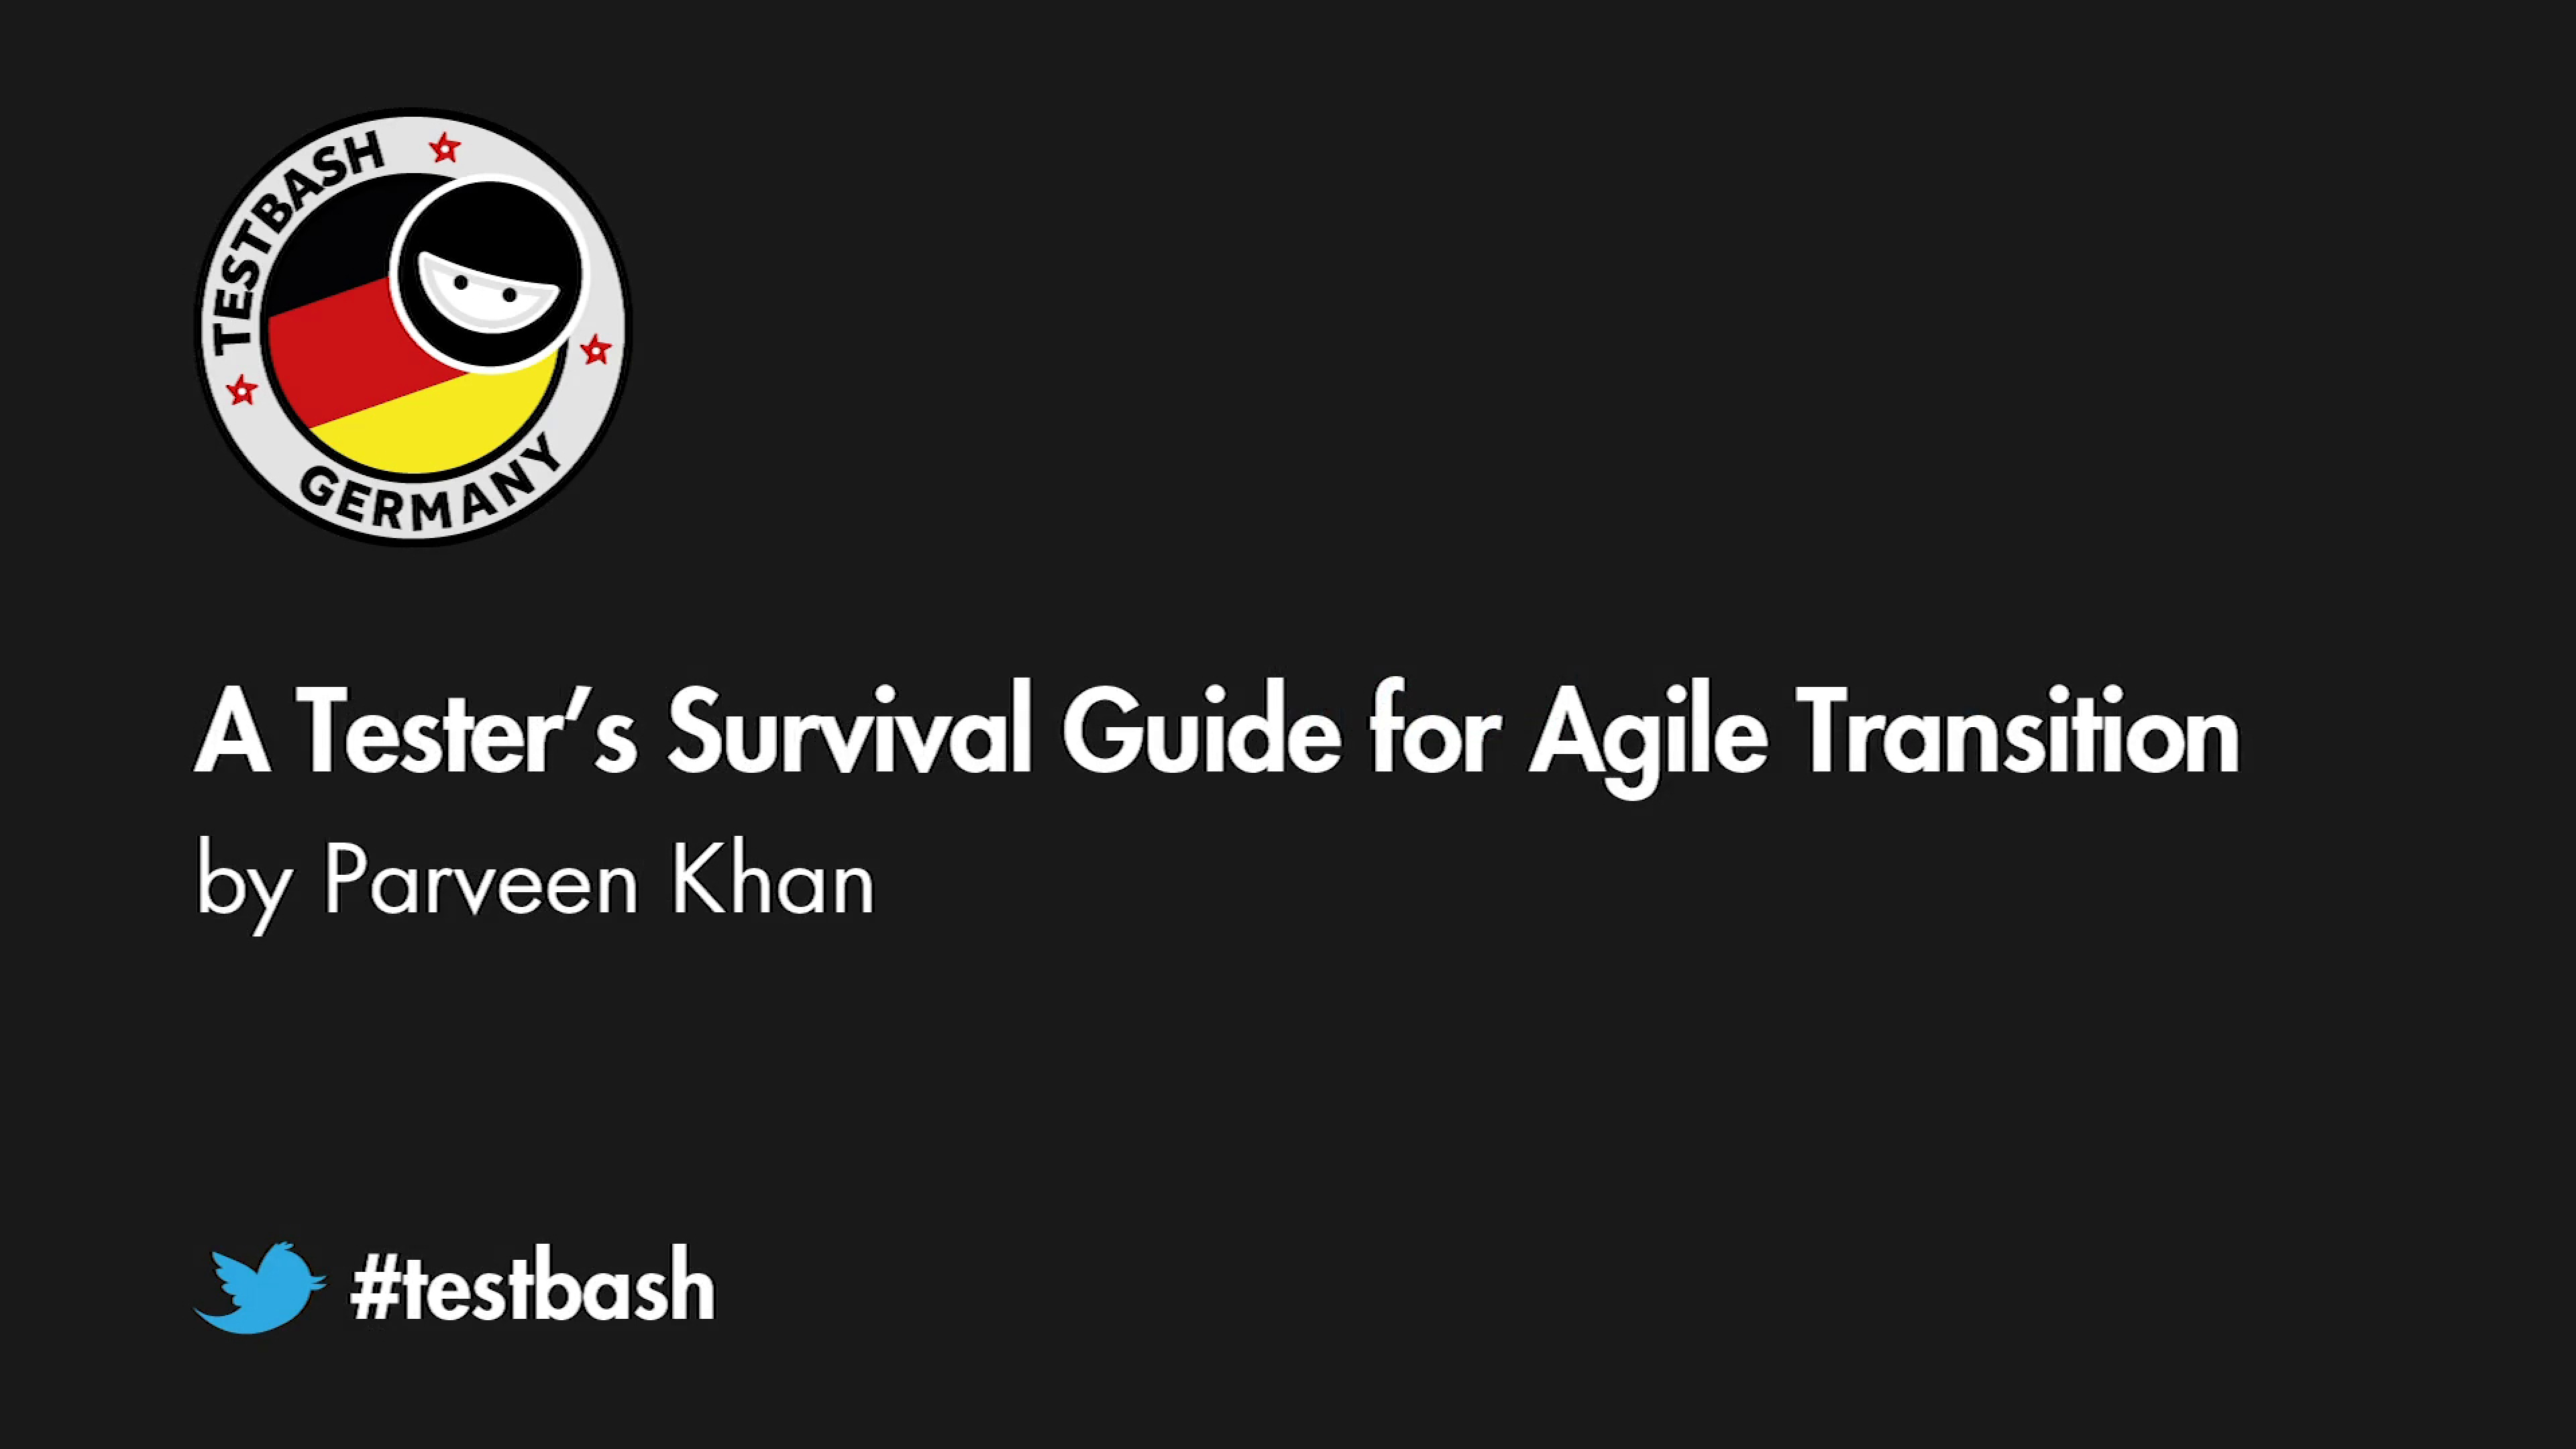 A Tester's Survival Guide for Agile Transition - Parveen Khan